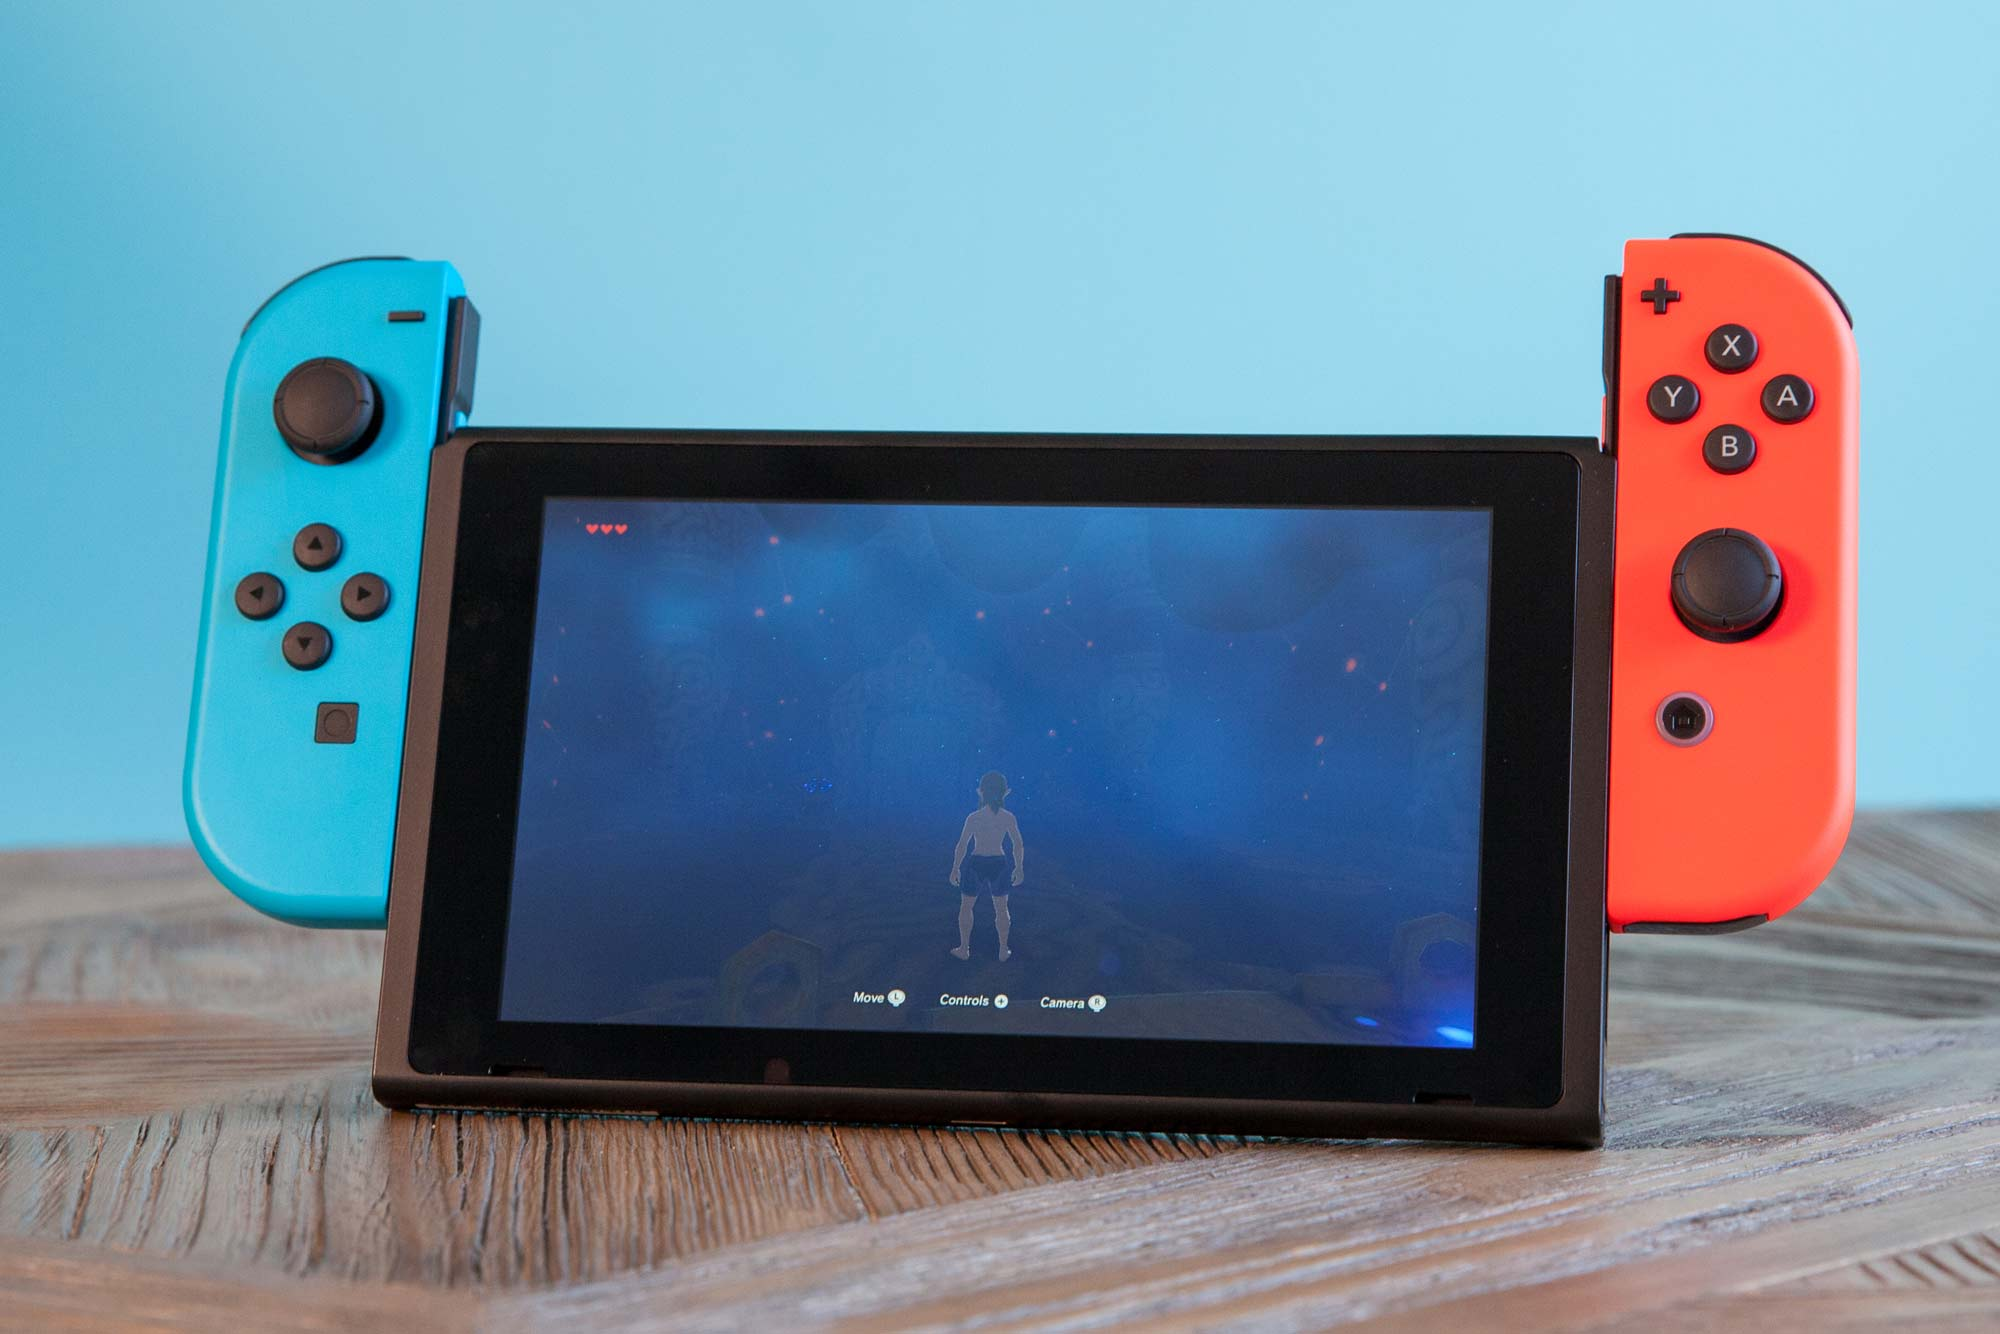 Nintendo Won't Be Happy About This Switch Emulator | Tom's Guide